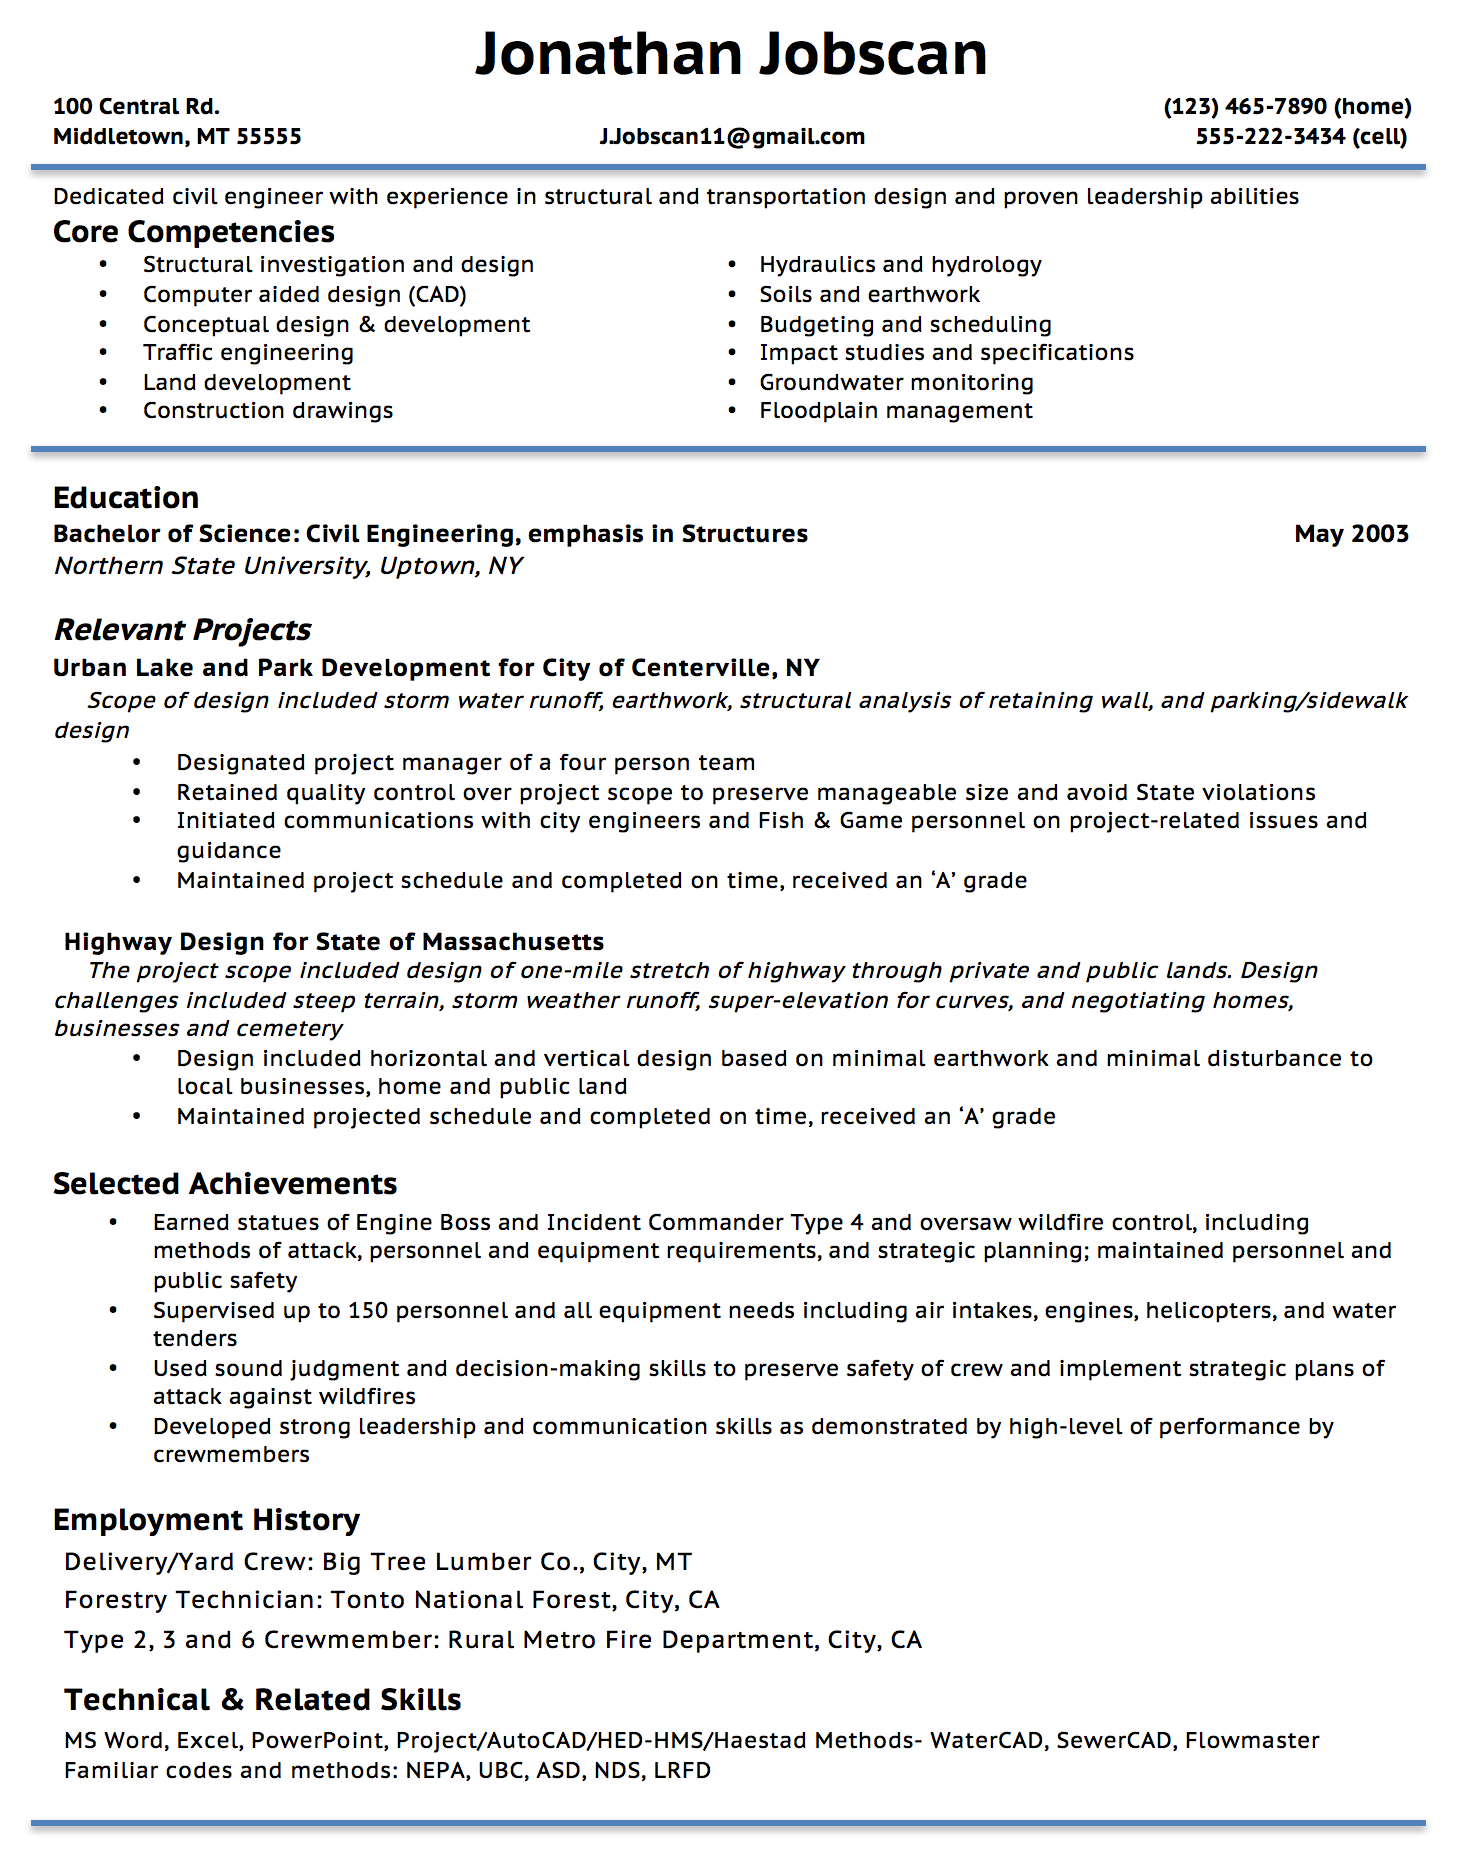 Opposenewapstandardsus  Terrific Resume Writing Guide  Jobscan With Remarkable Example Of A Functional Resume Format With Cool Download A Resume Also Career Counselor Resume In Addition Administrative Assistant Job Duties For Resume And Digital Strategist Resume As Well As Objective For Business Resume Additionally Medical Resume Writing Services From Jobscanco With Opposenewapstandardsus  Remarkable Resume Writing Guide  Jobscan With Cool Example Of A Functional Resume Format And Terrific Download A Resume Also Career Counselor Resume In Addition Administrative Assistant Job Duties For Resume From Jobscanco